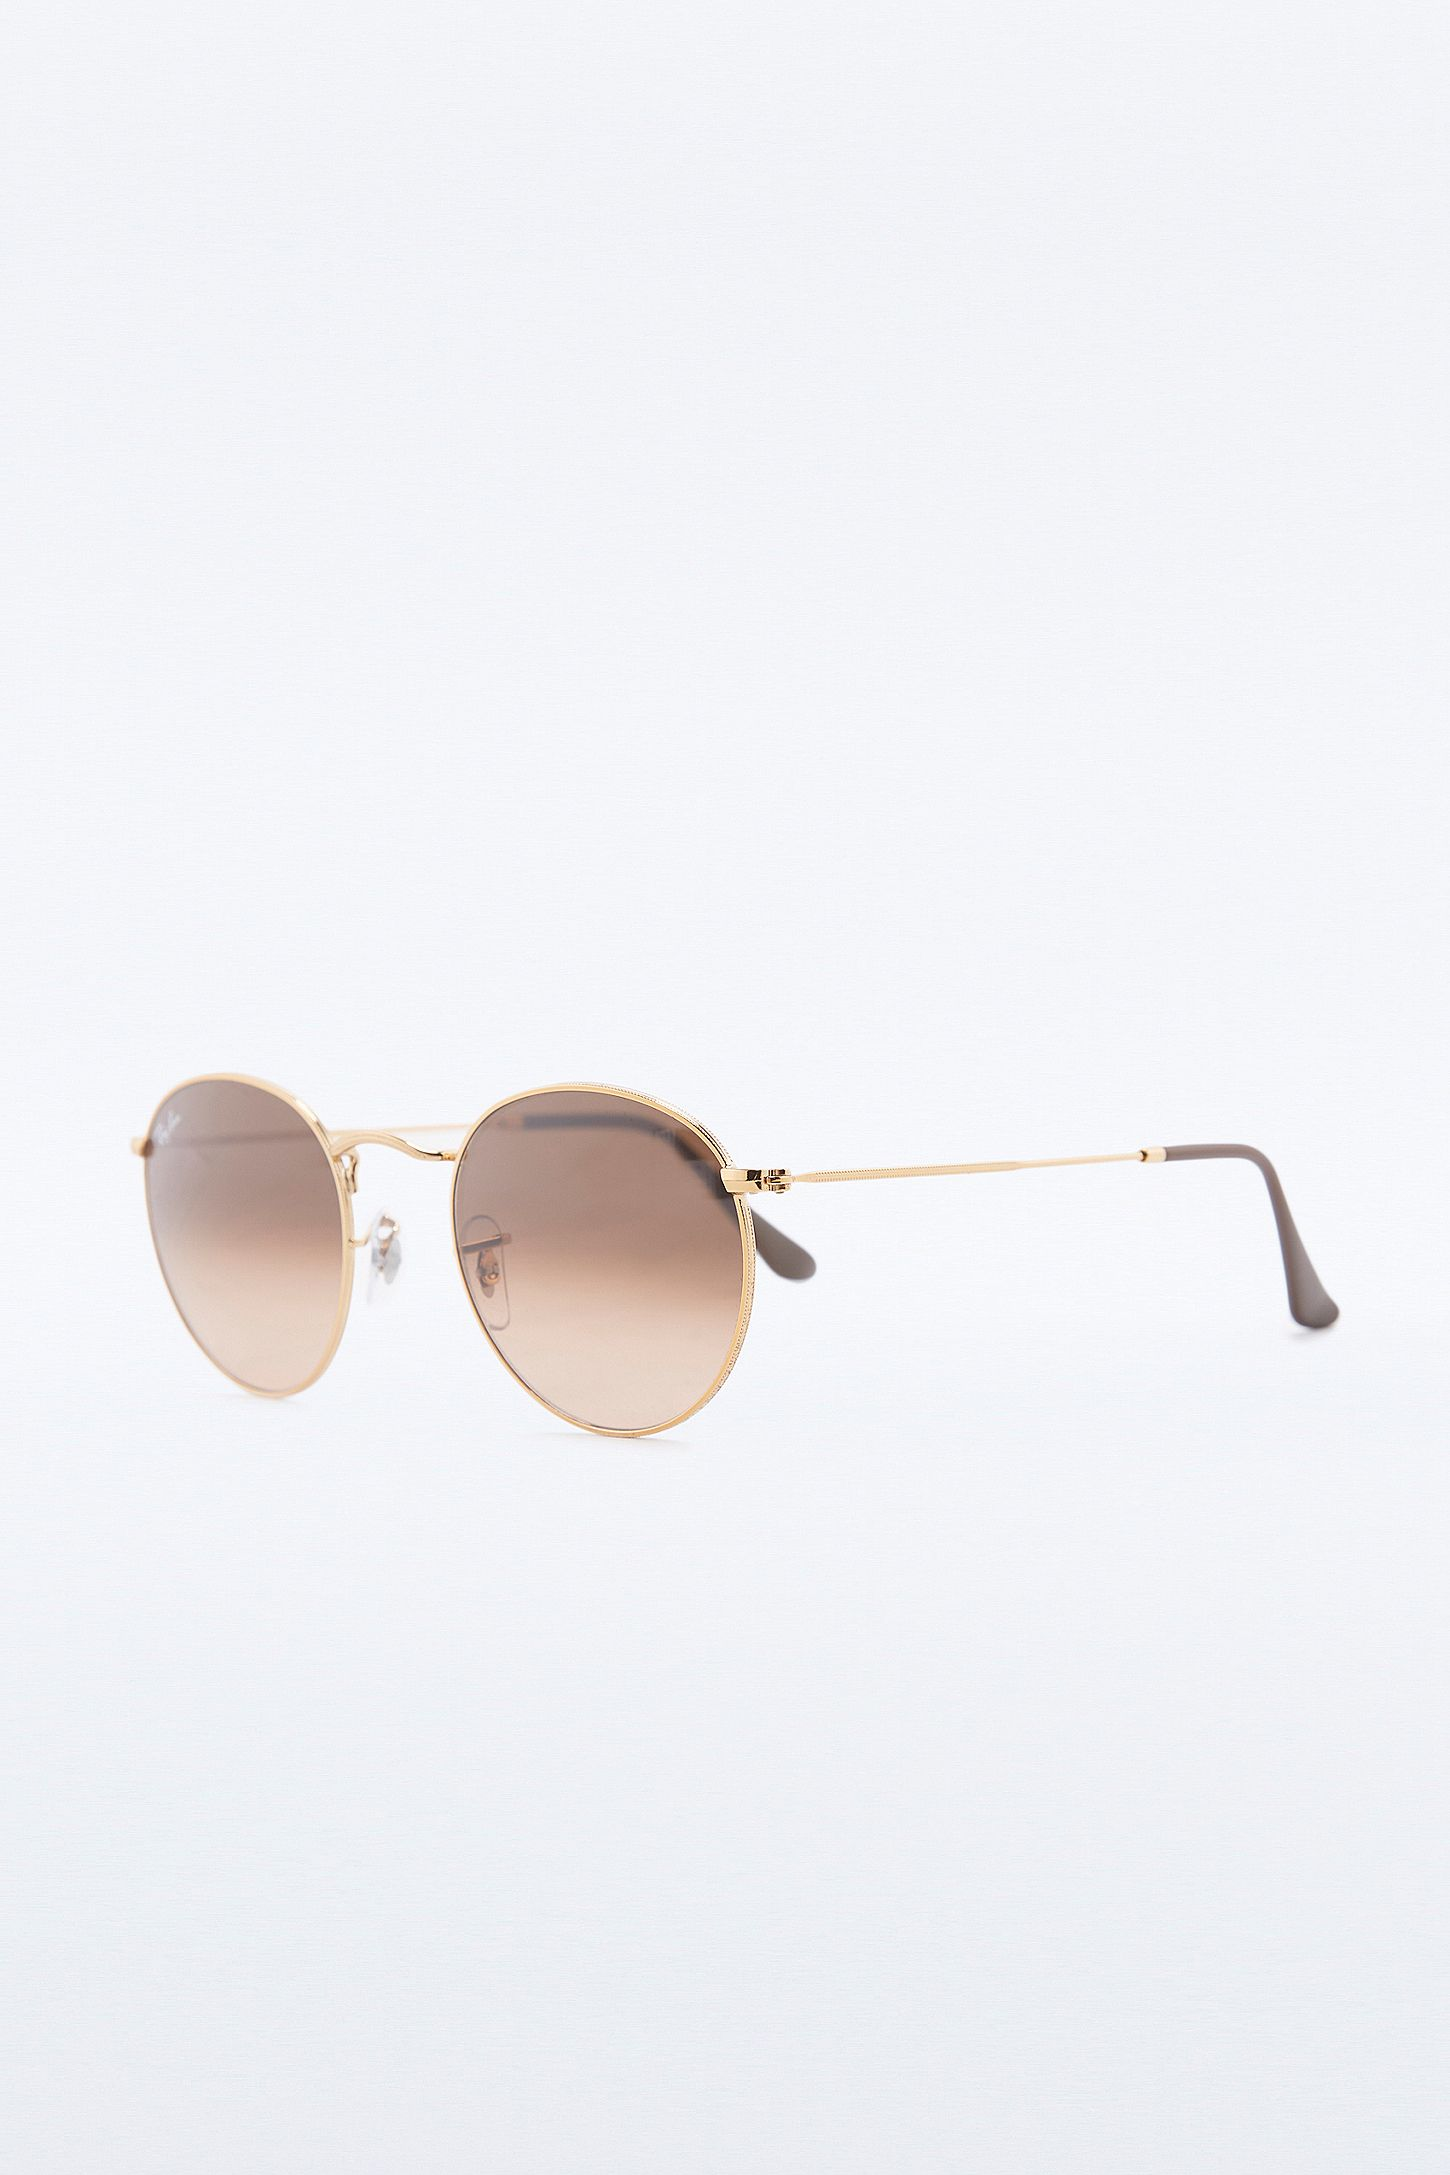 9212402a57d3 Ray-Ban Round Metal Shiny Light Bronze Sunglasses. Click on image to zoom.  Hover to zoom. Double Tap to Zoom